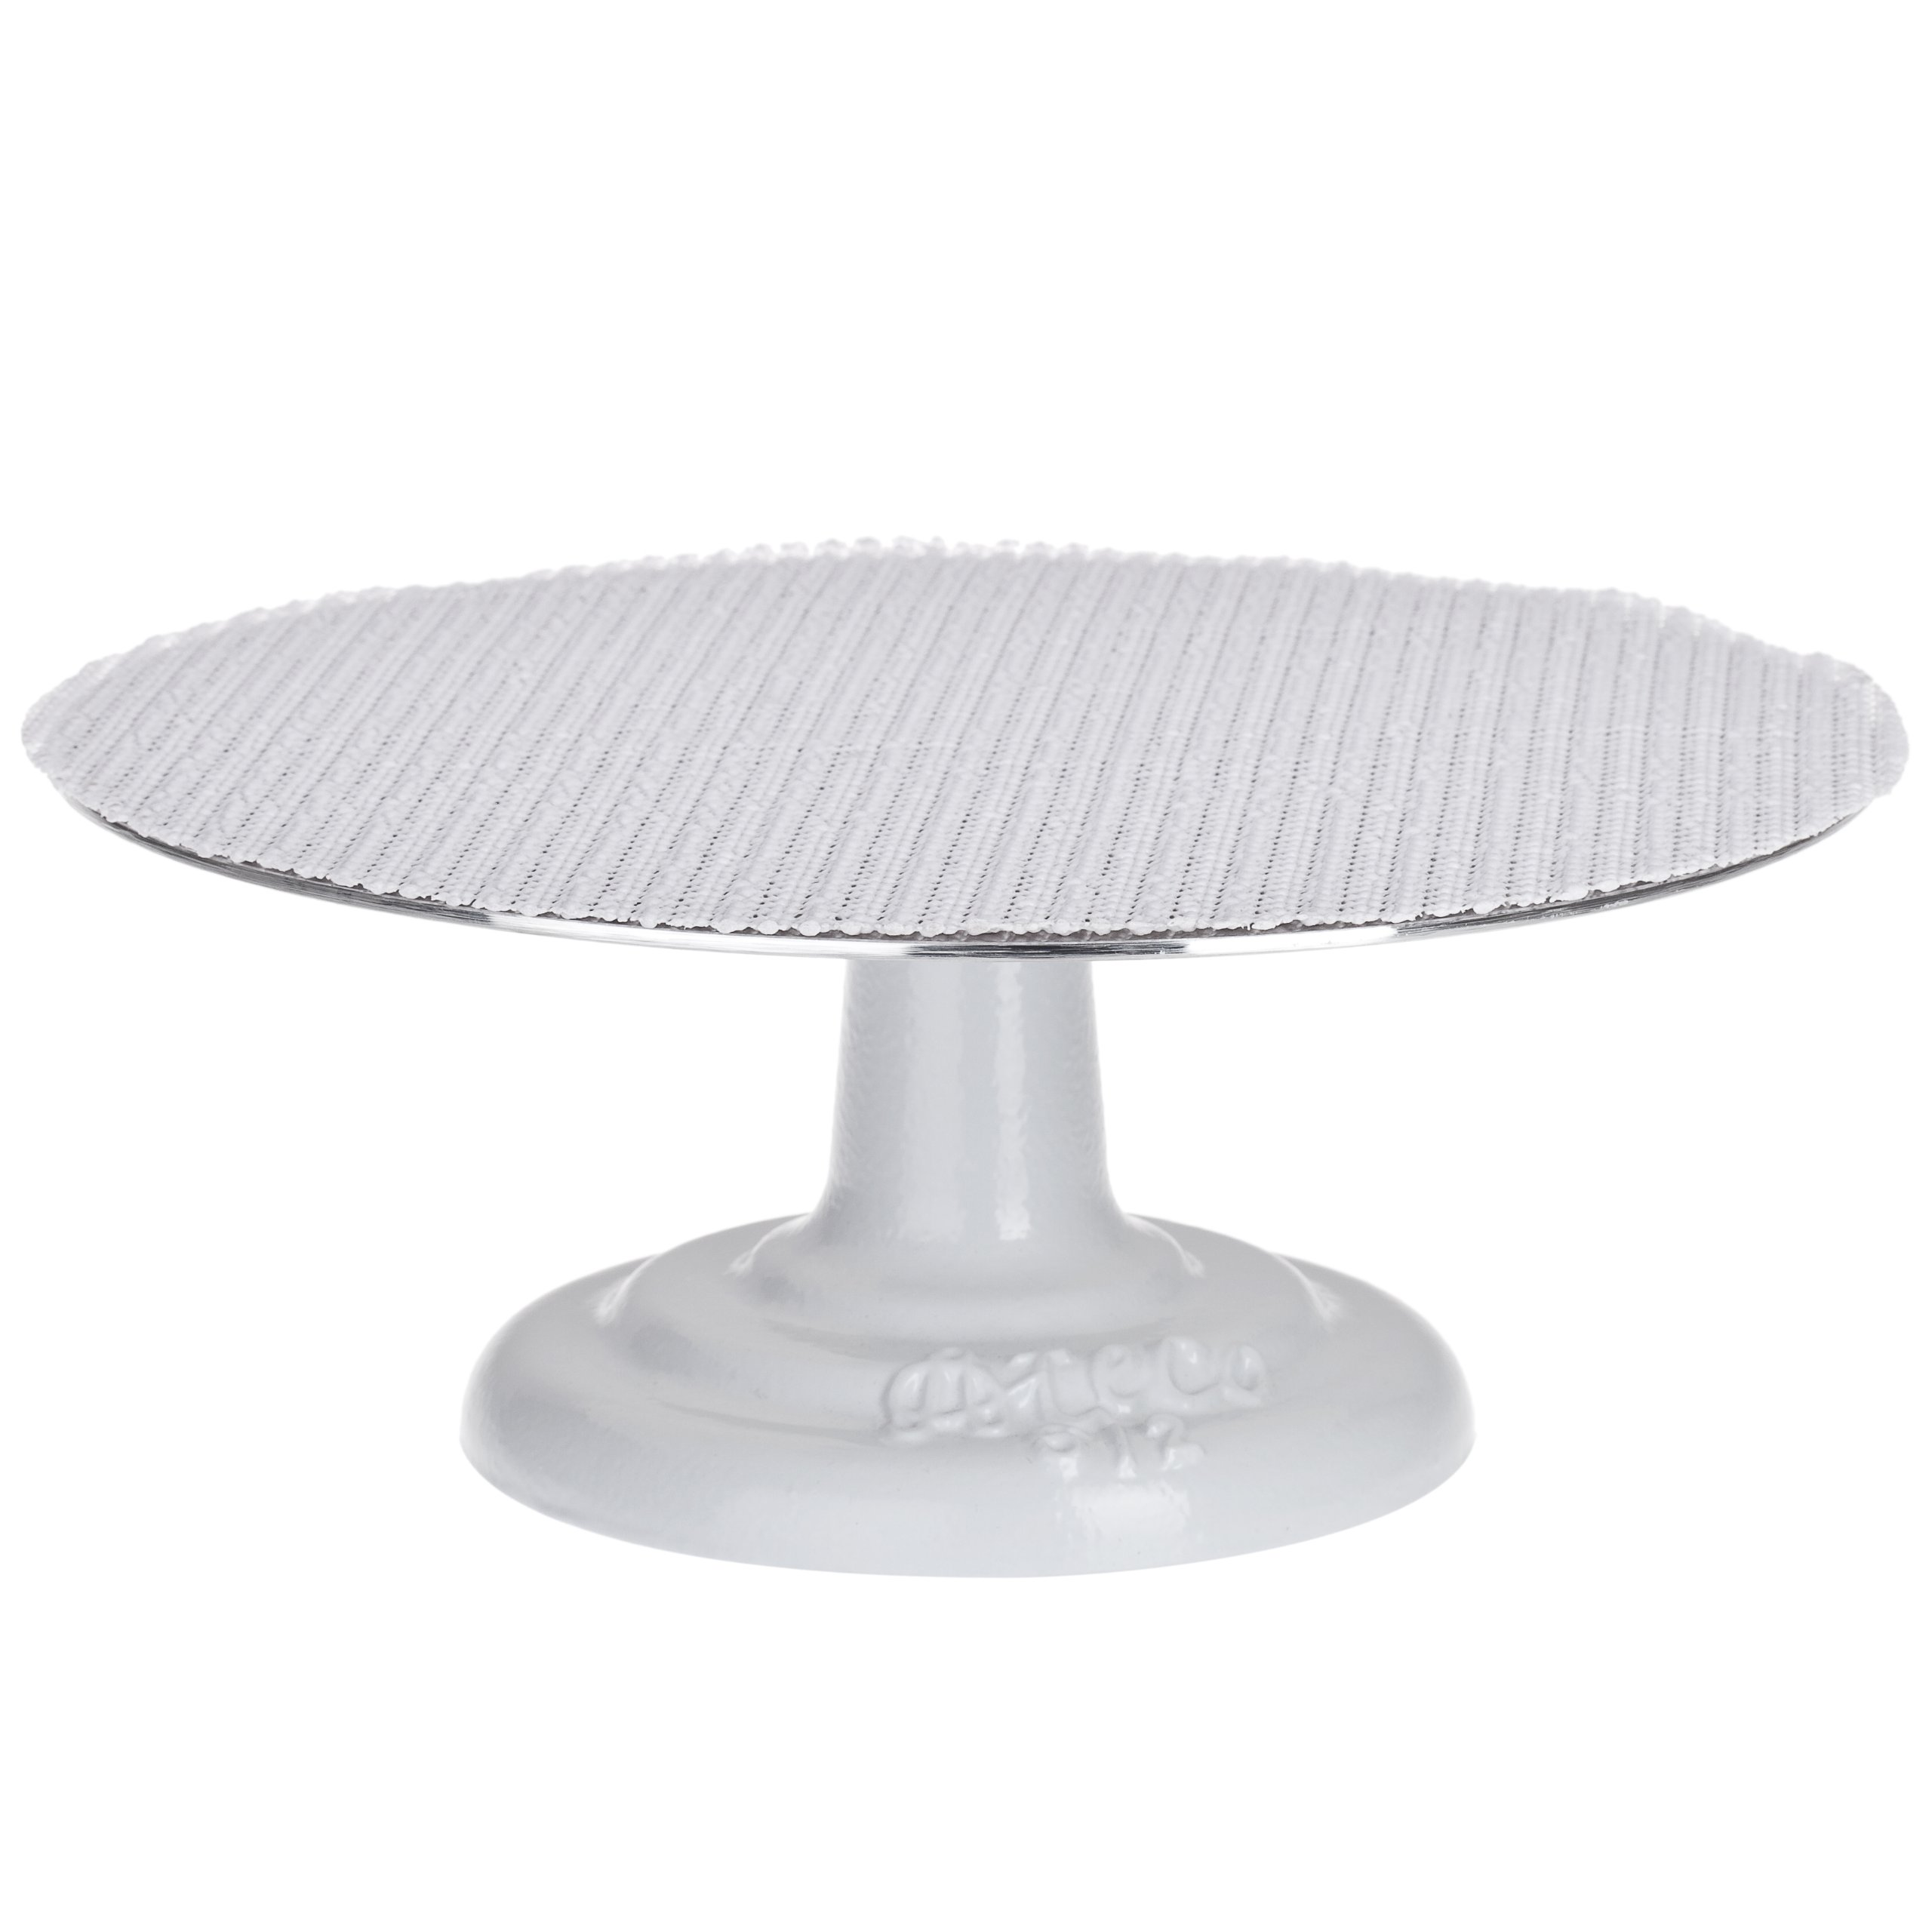 Ateco 612 Revolving Cake Decorating Stand, 12'' Round, Cast Iron Base with 1/8'' Aluminum Top